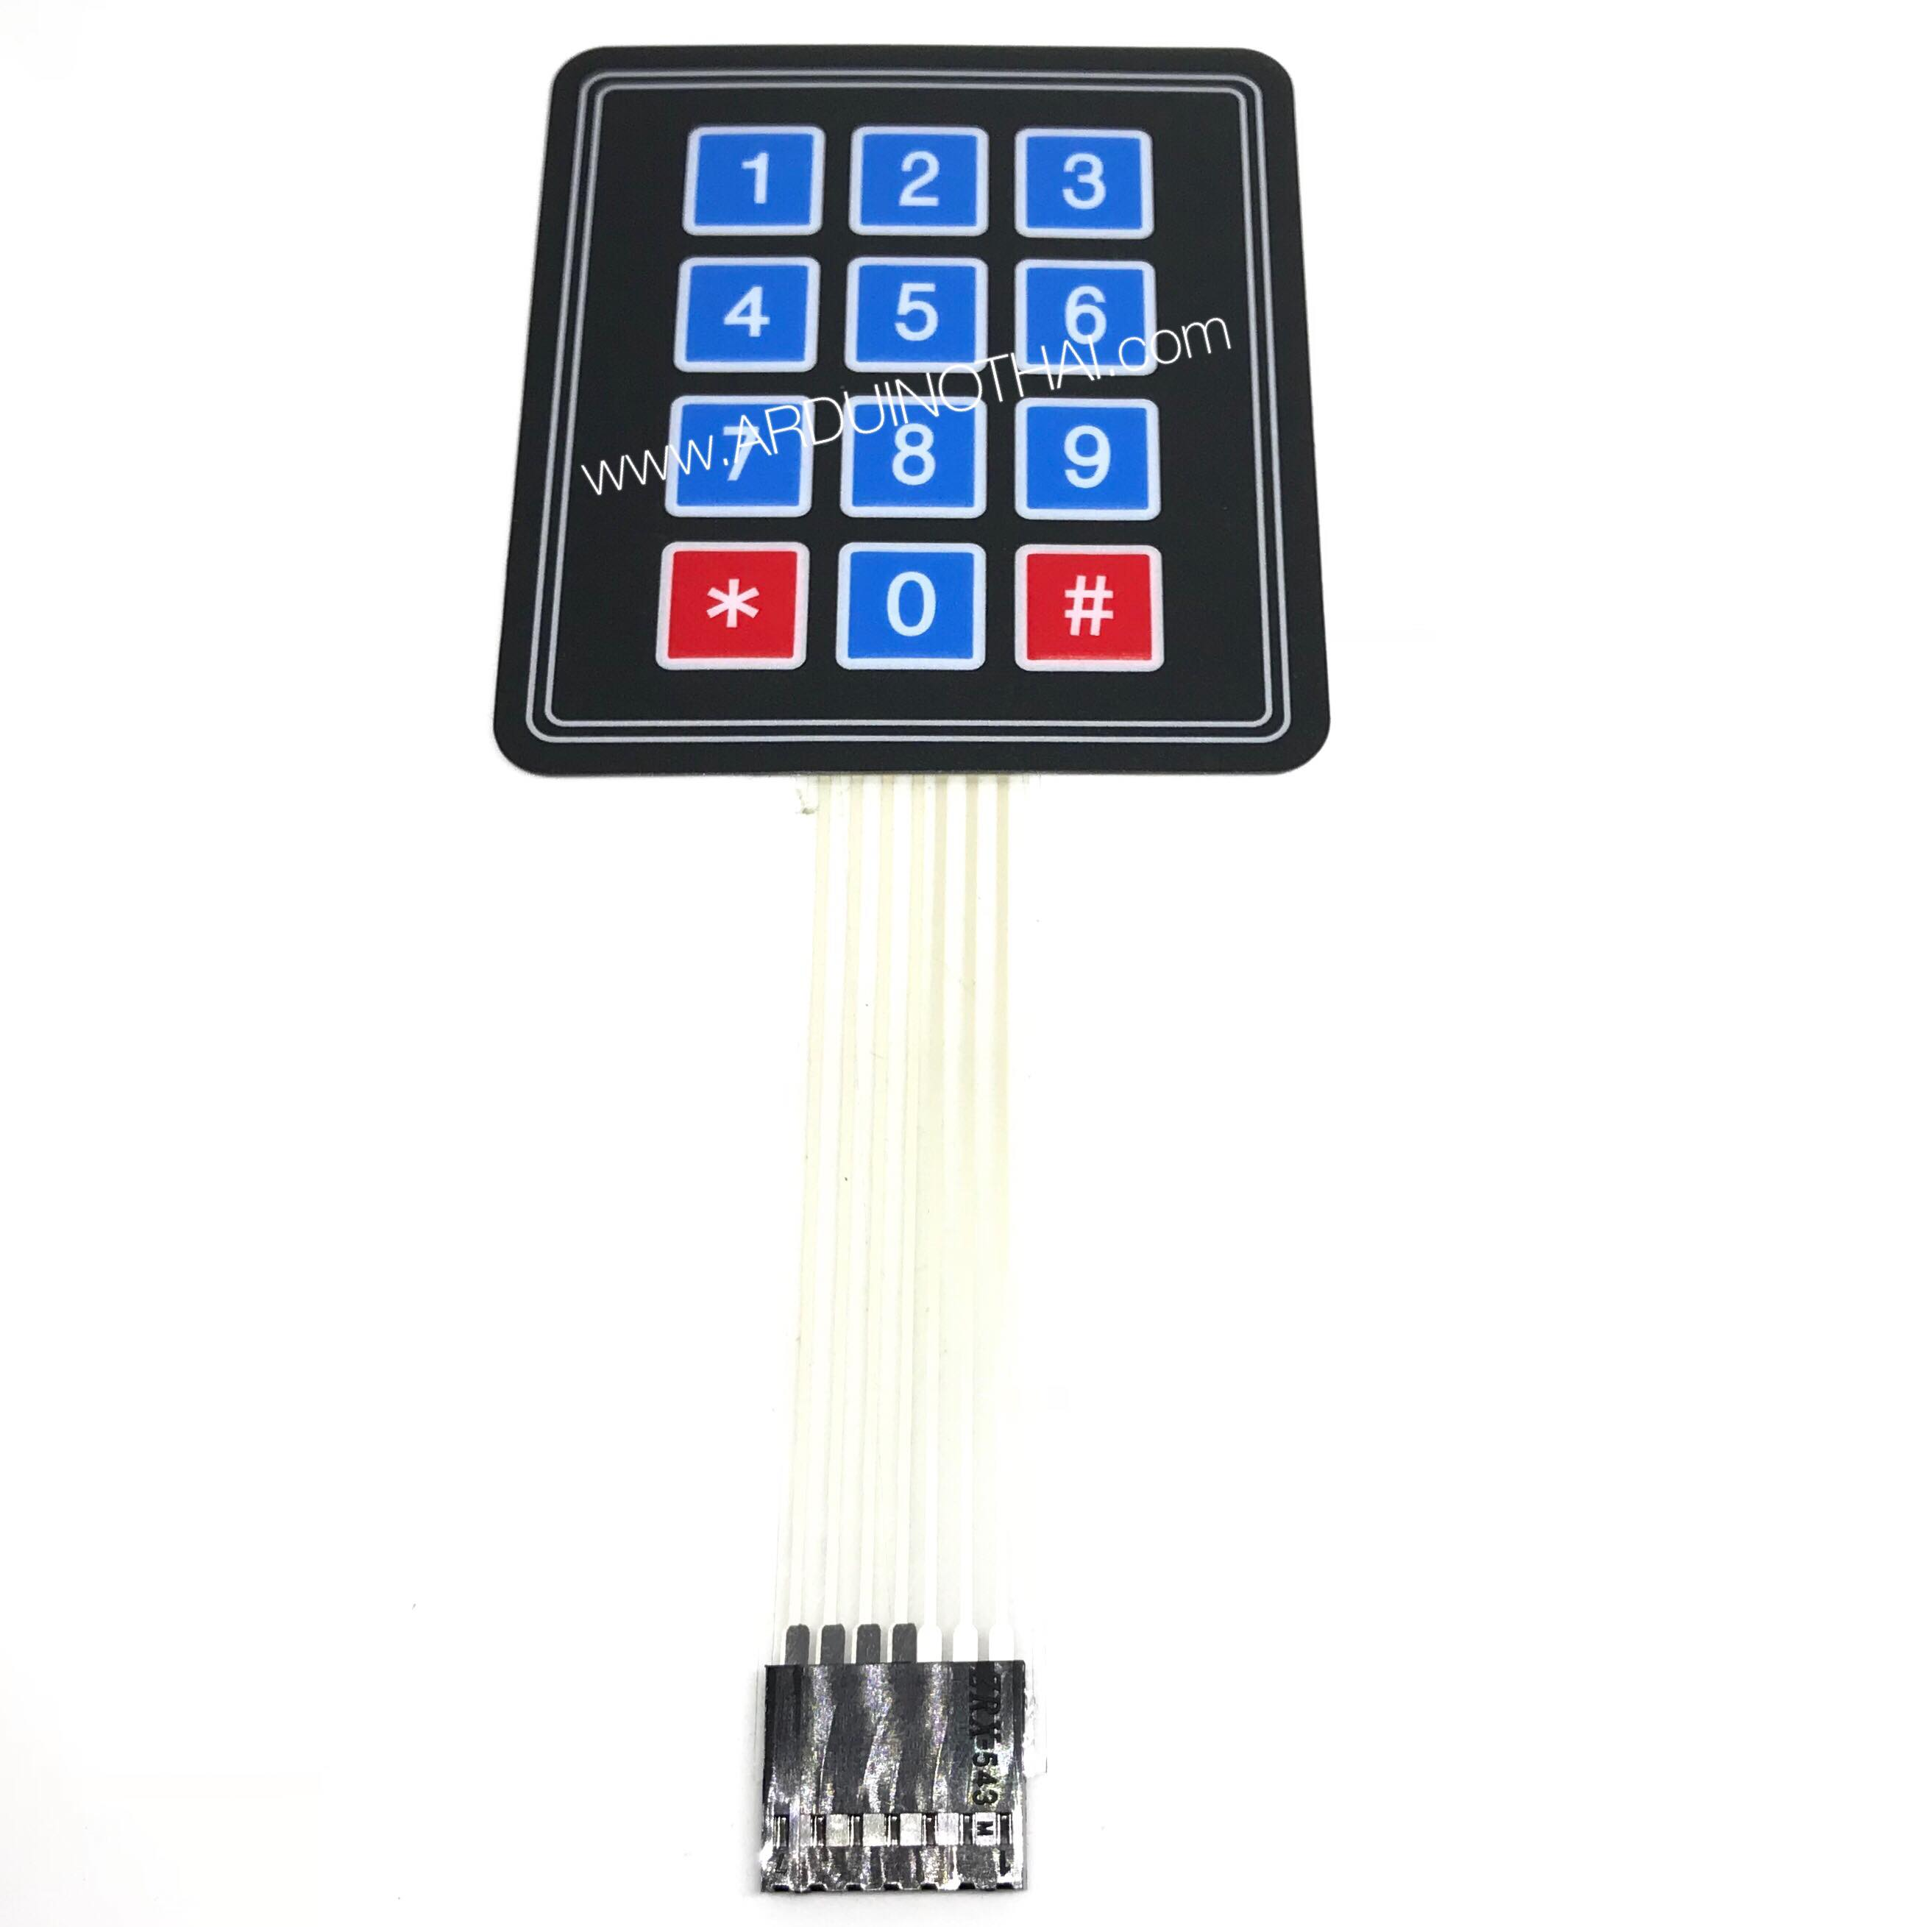 3x4 matrix keypad